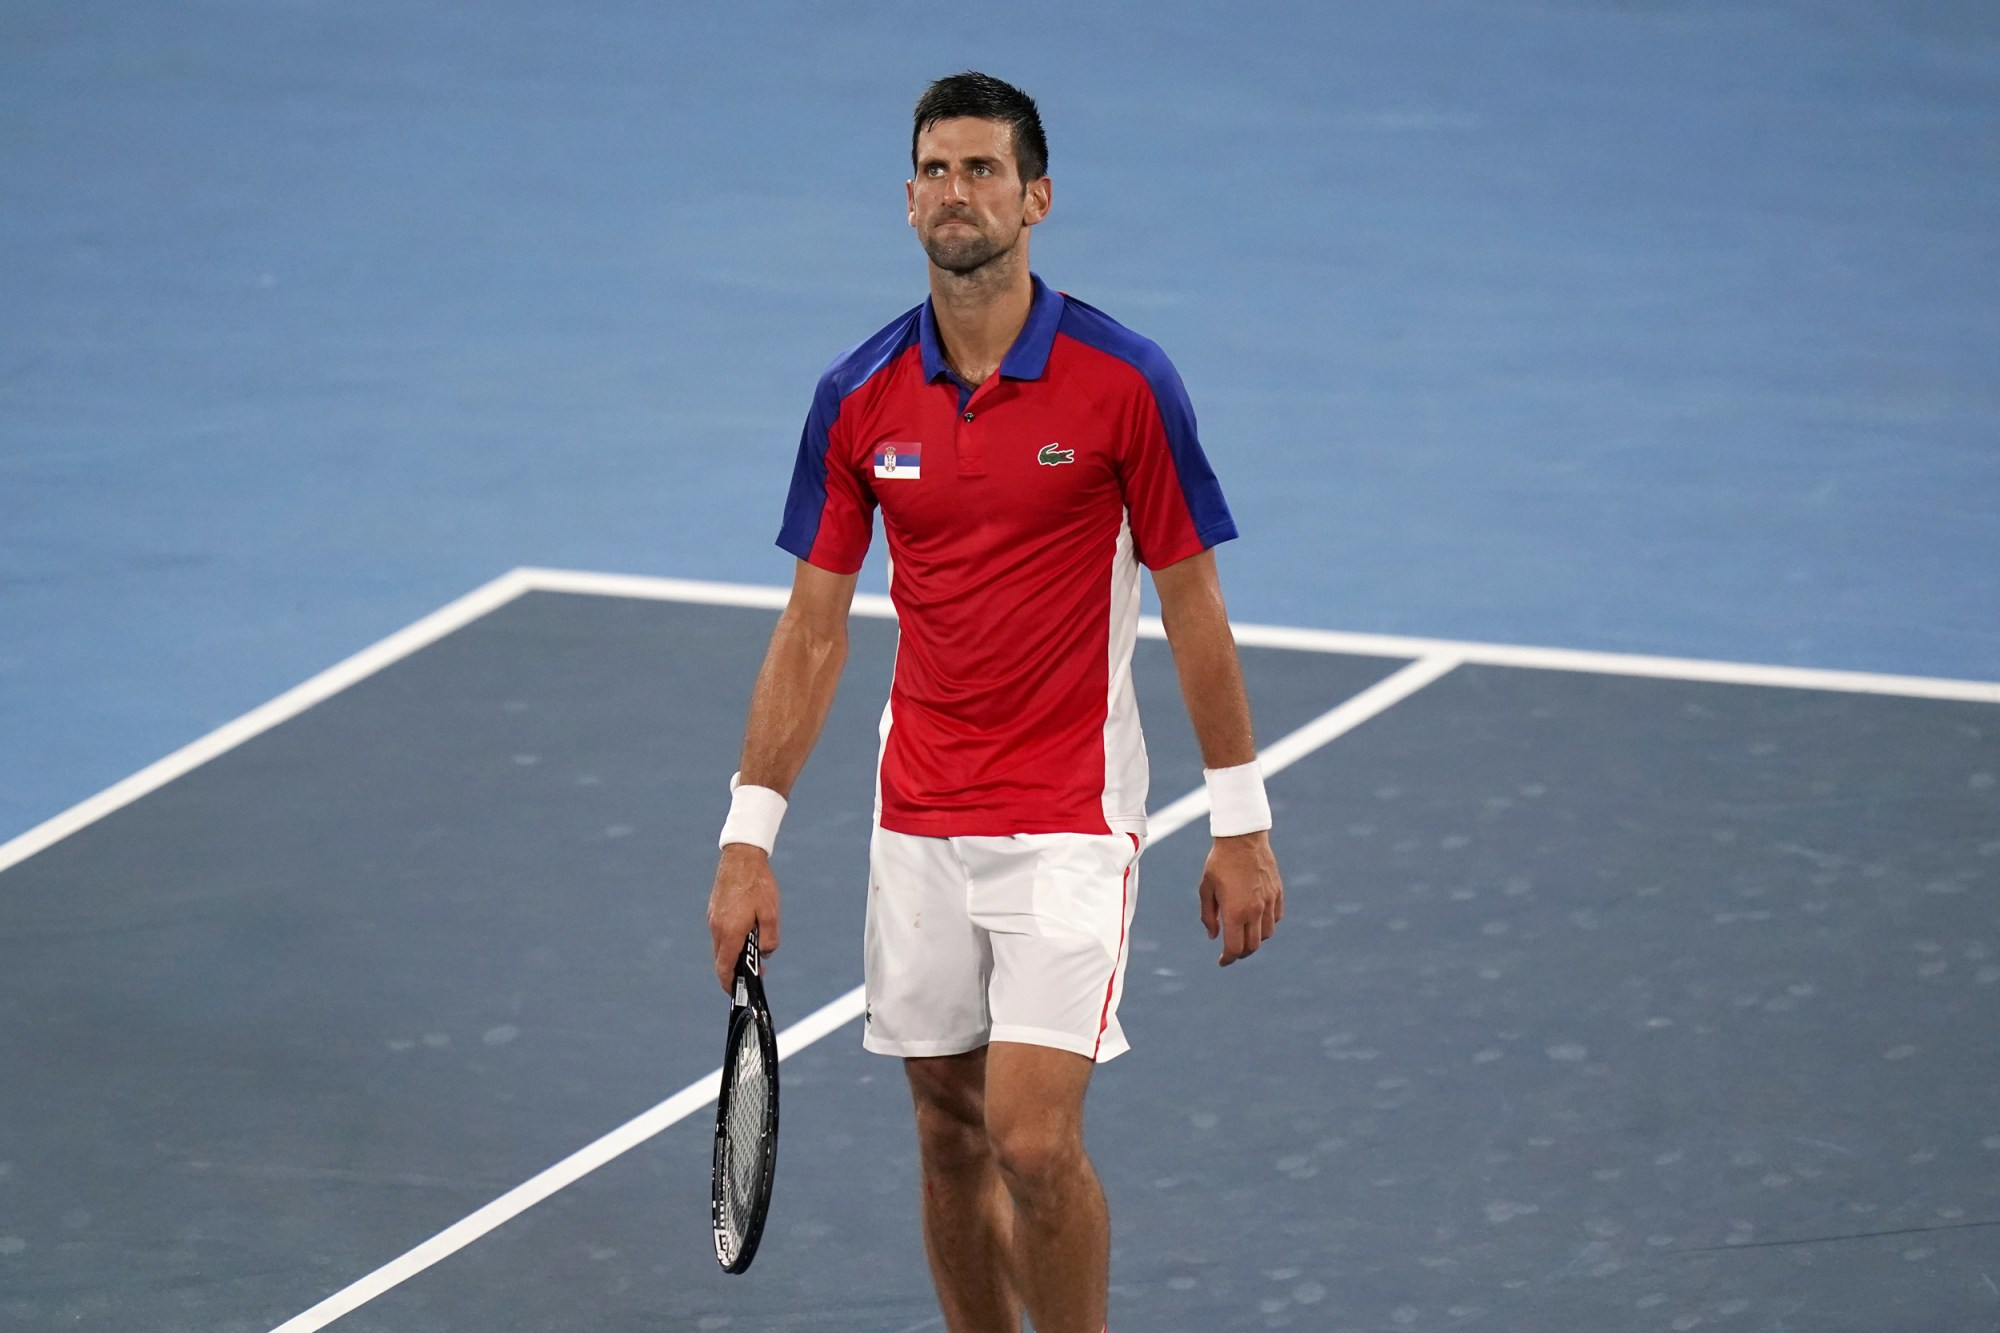 Novak Djokovic loses against Zverev at the Olympic Games and ends the  Golden Slam bid - USA Newszz